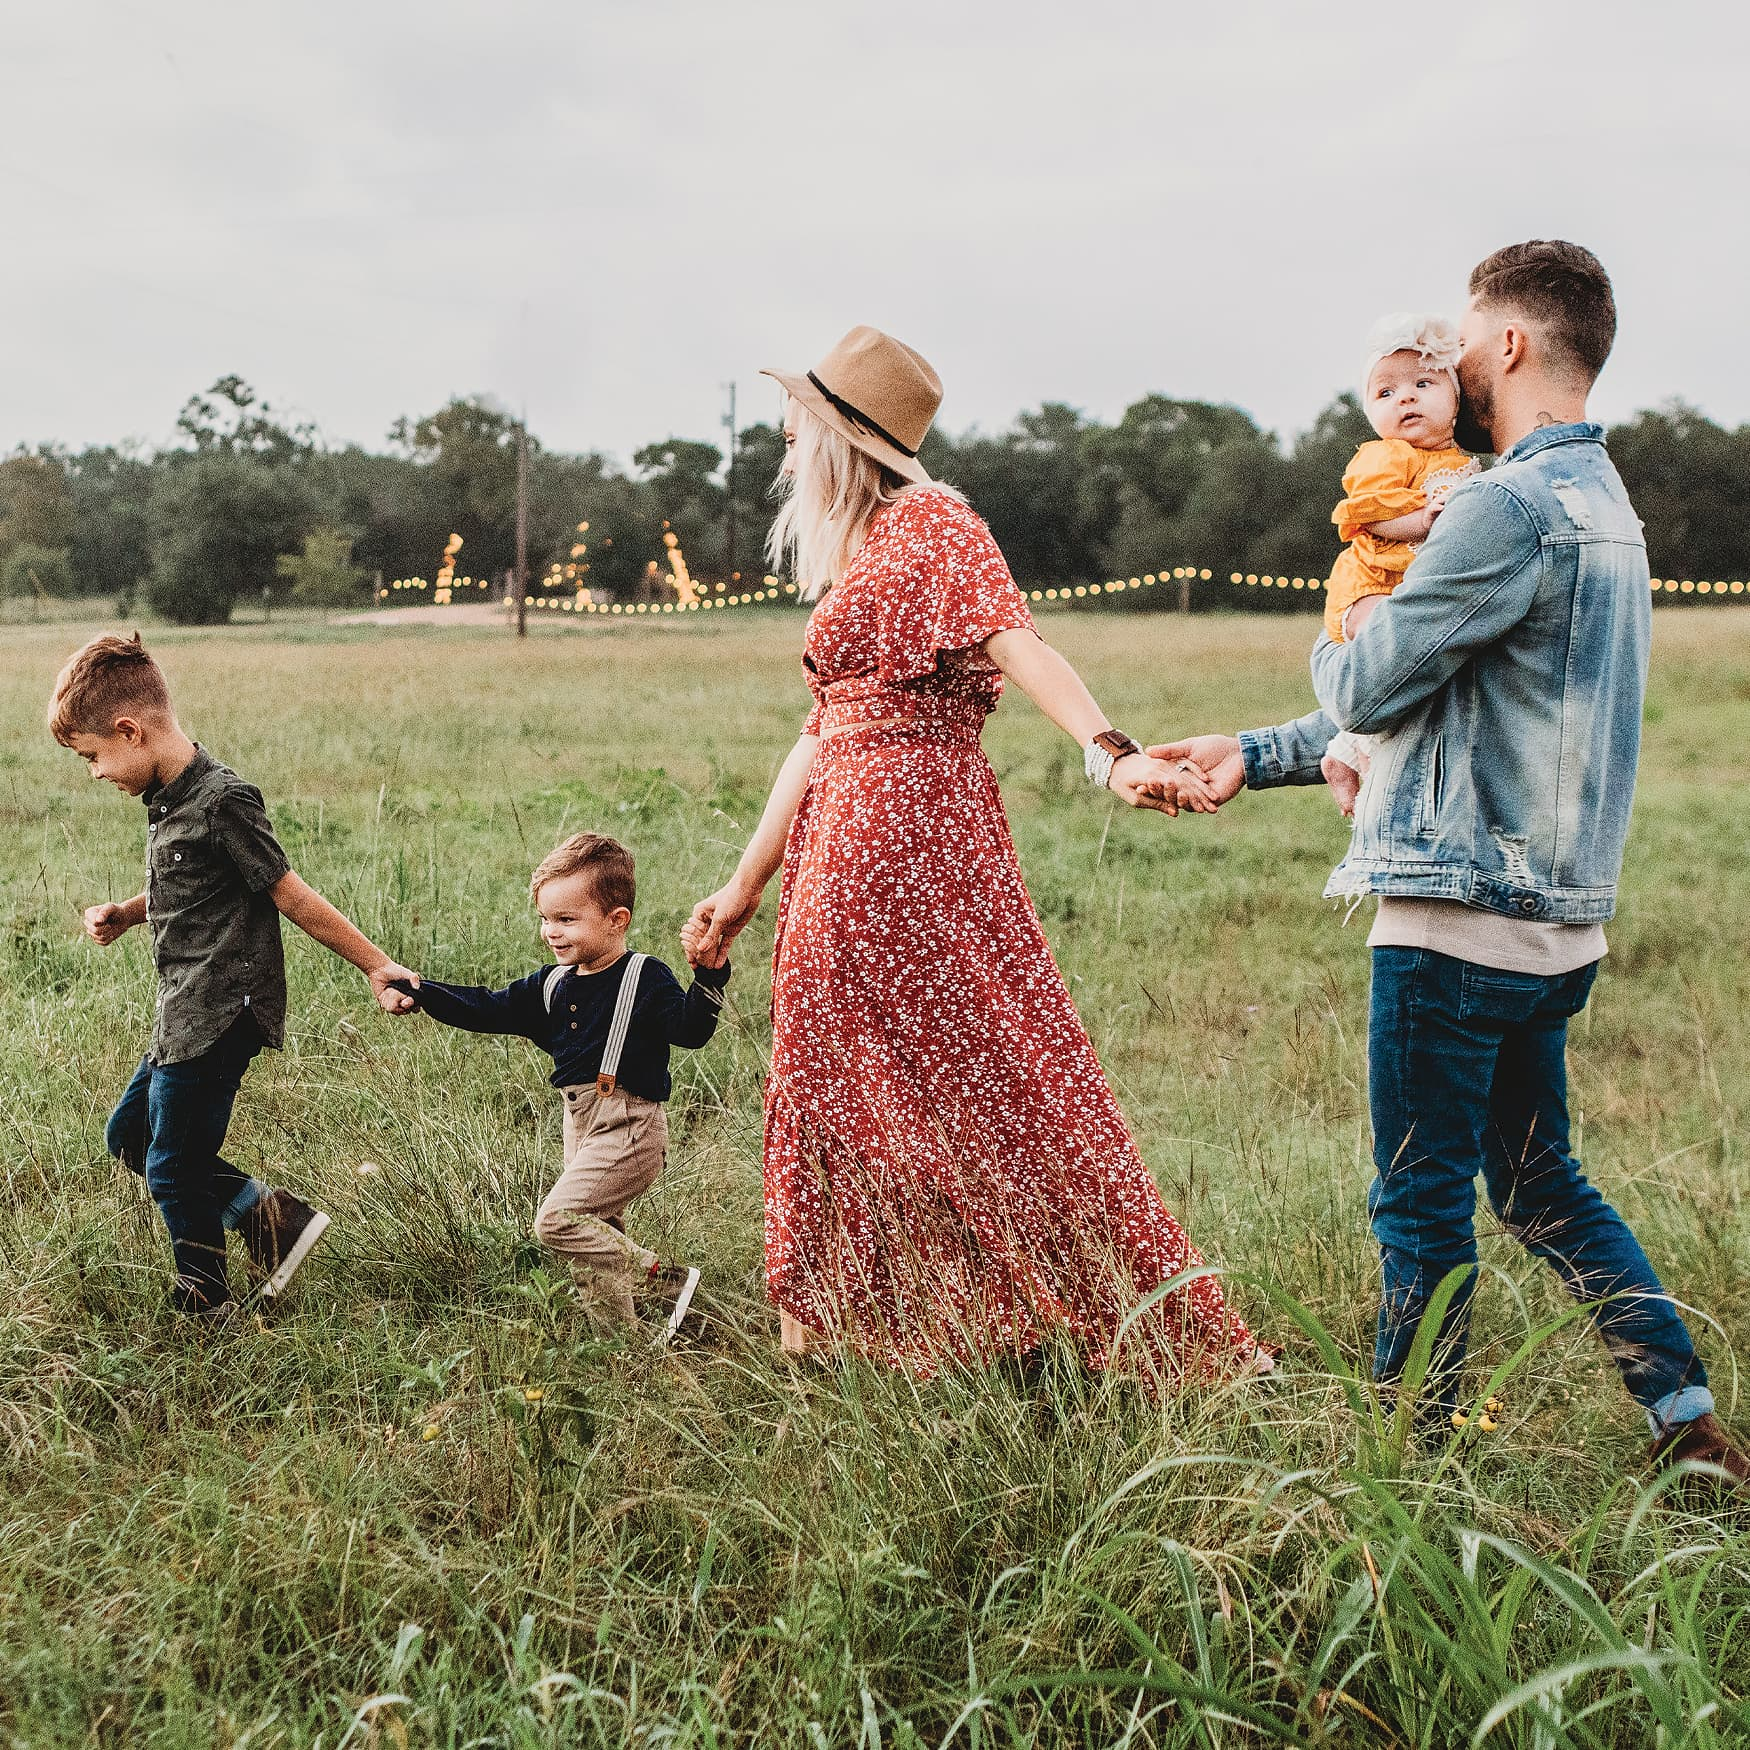 Family with children walking through a grass field on a farm.